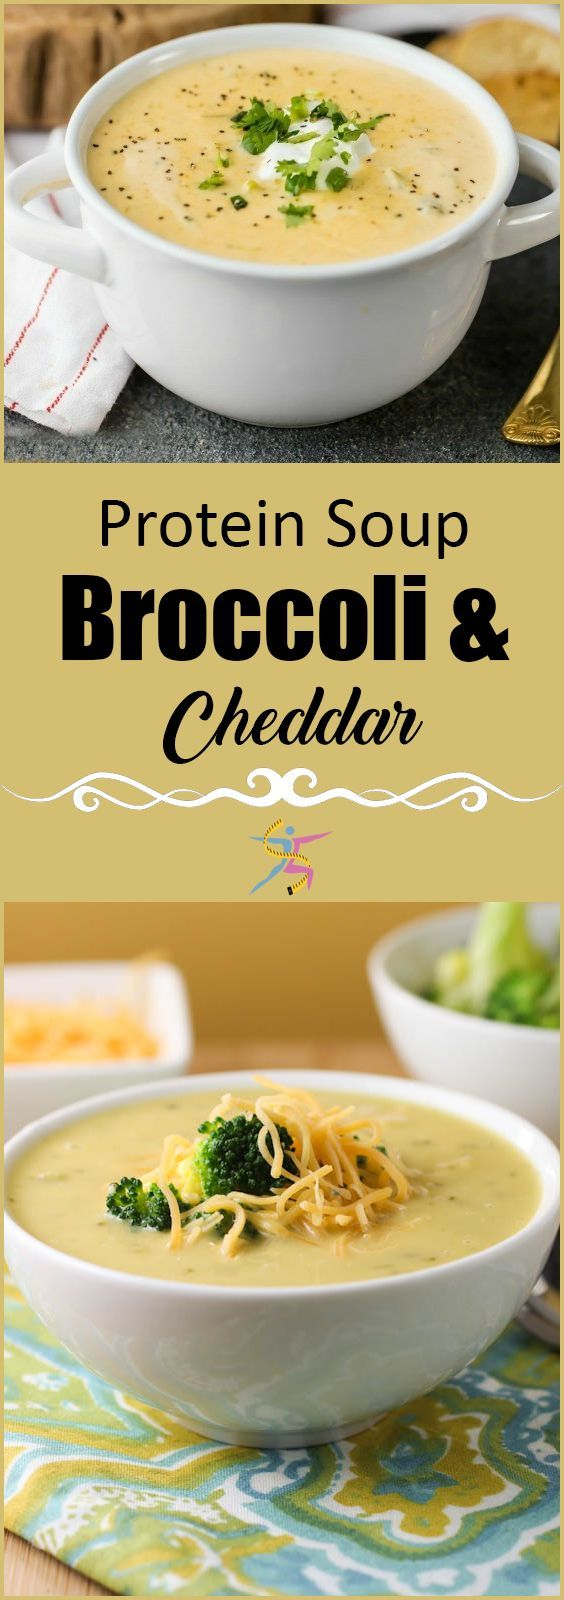 BariatricPal Protein Soup - Broccoli and Cheddar